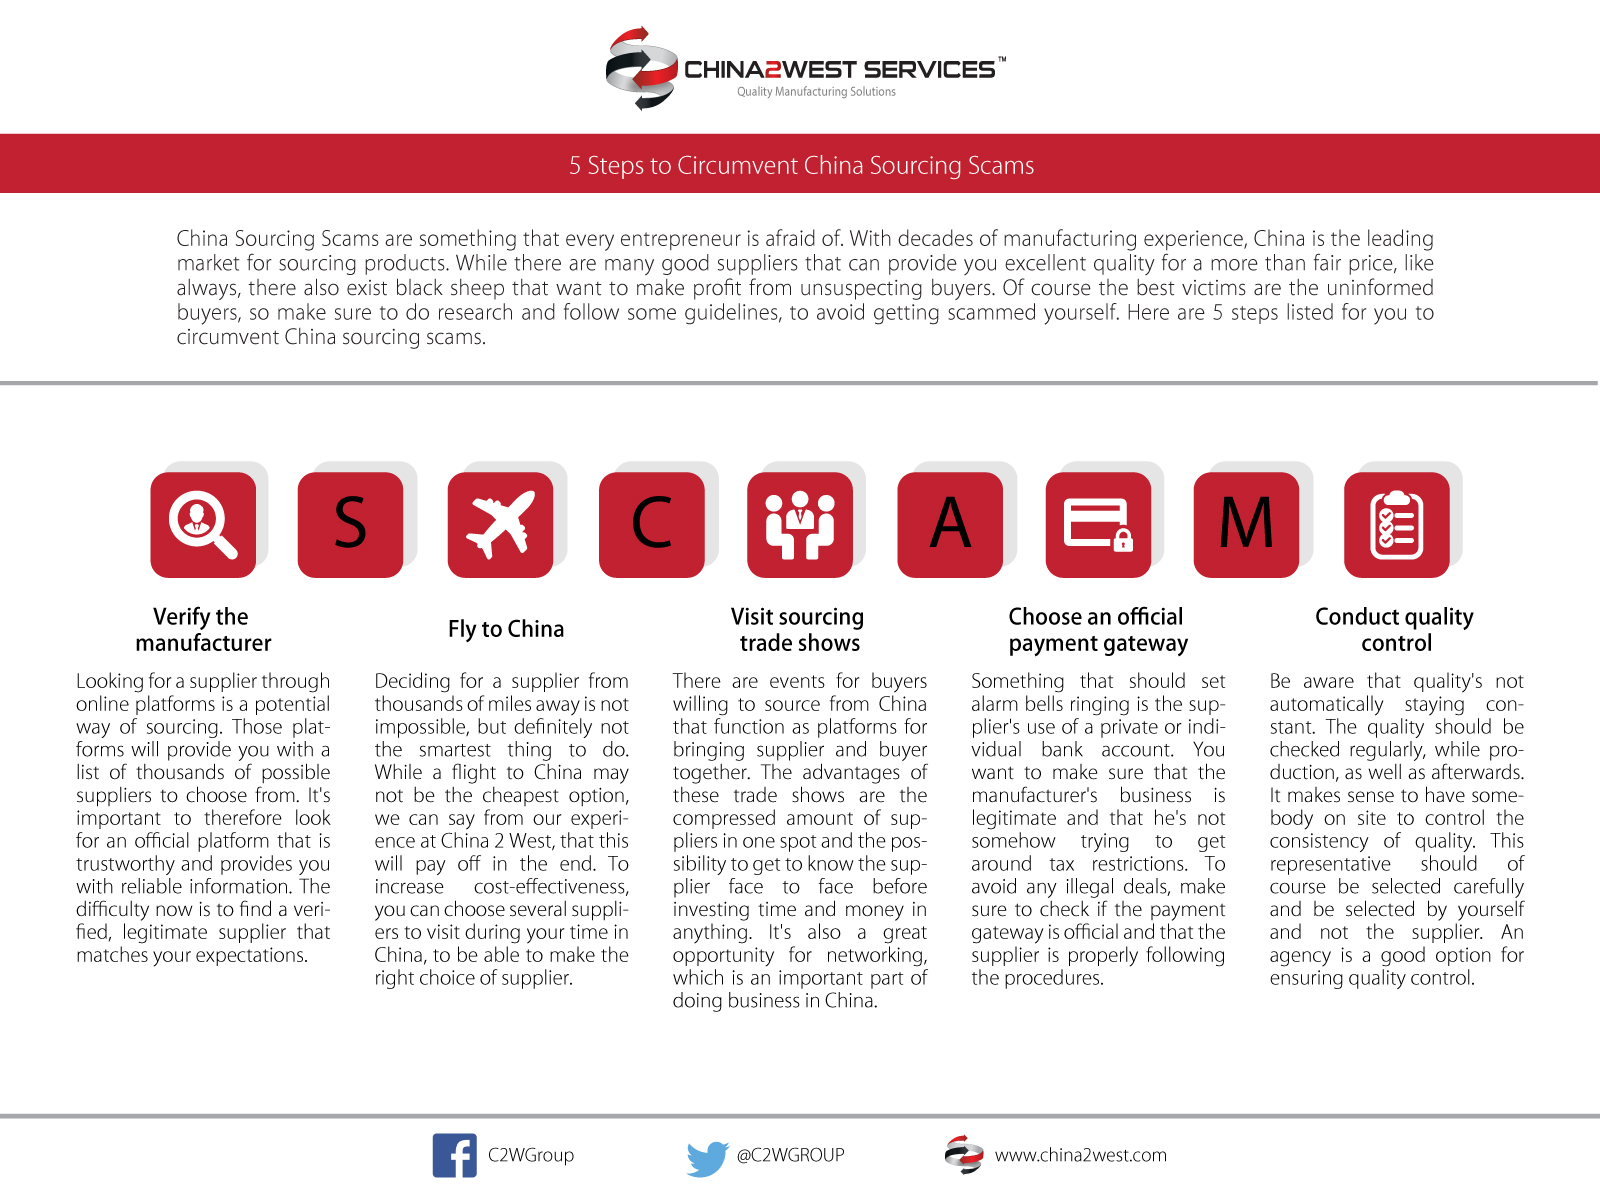 C2W Infographic - 5 Steps to Circumvent China Sourcing Scams